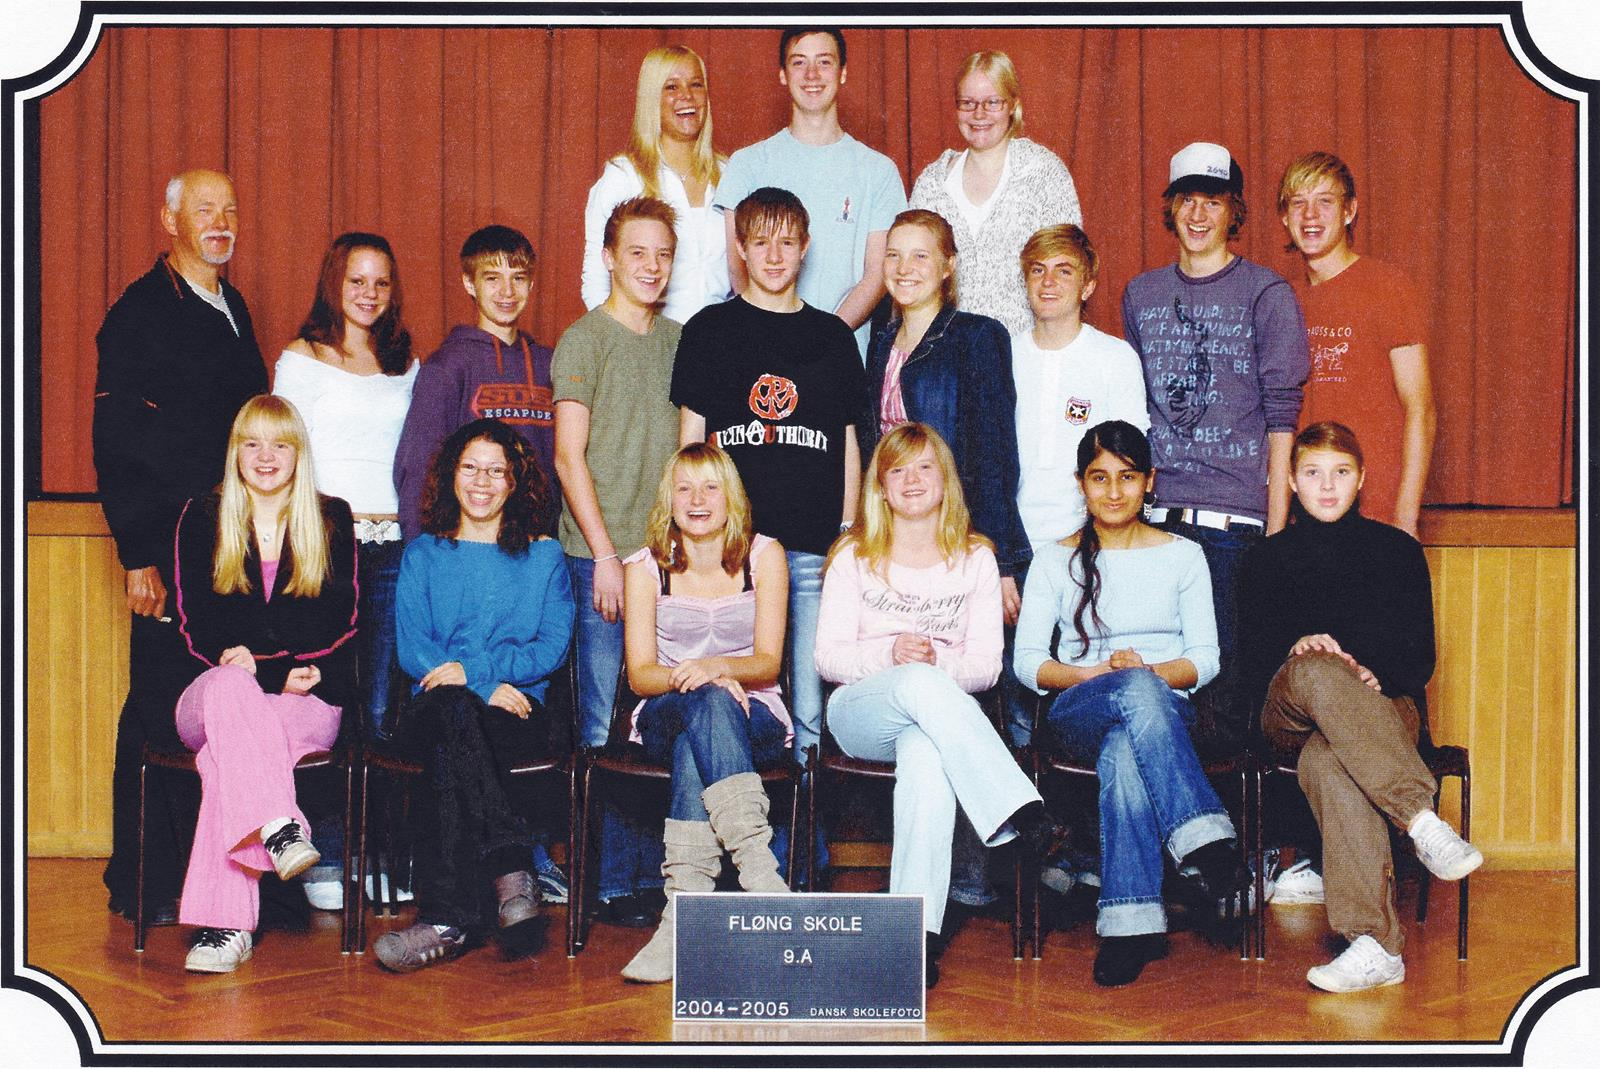 IMG_9.A 2004-05